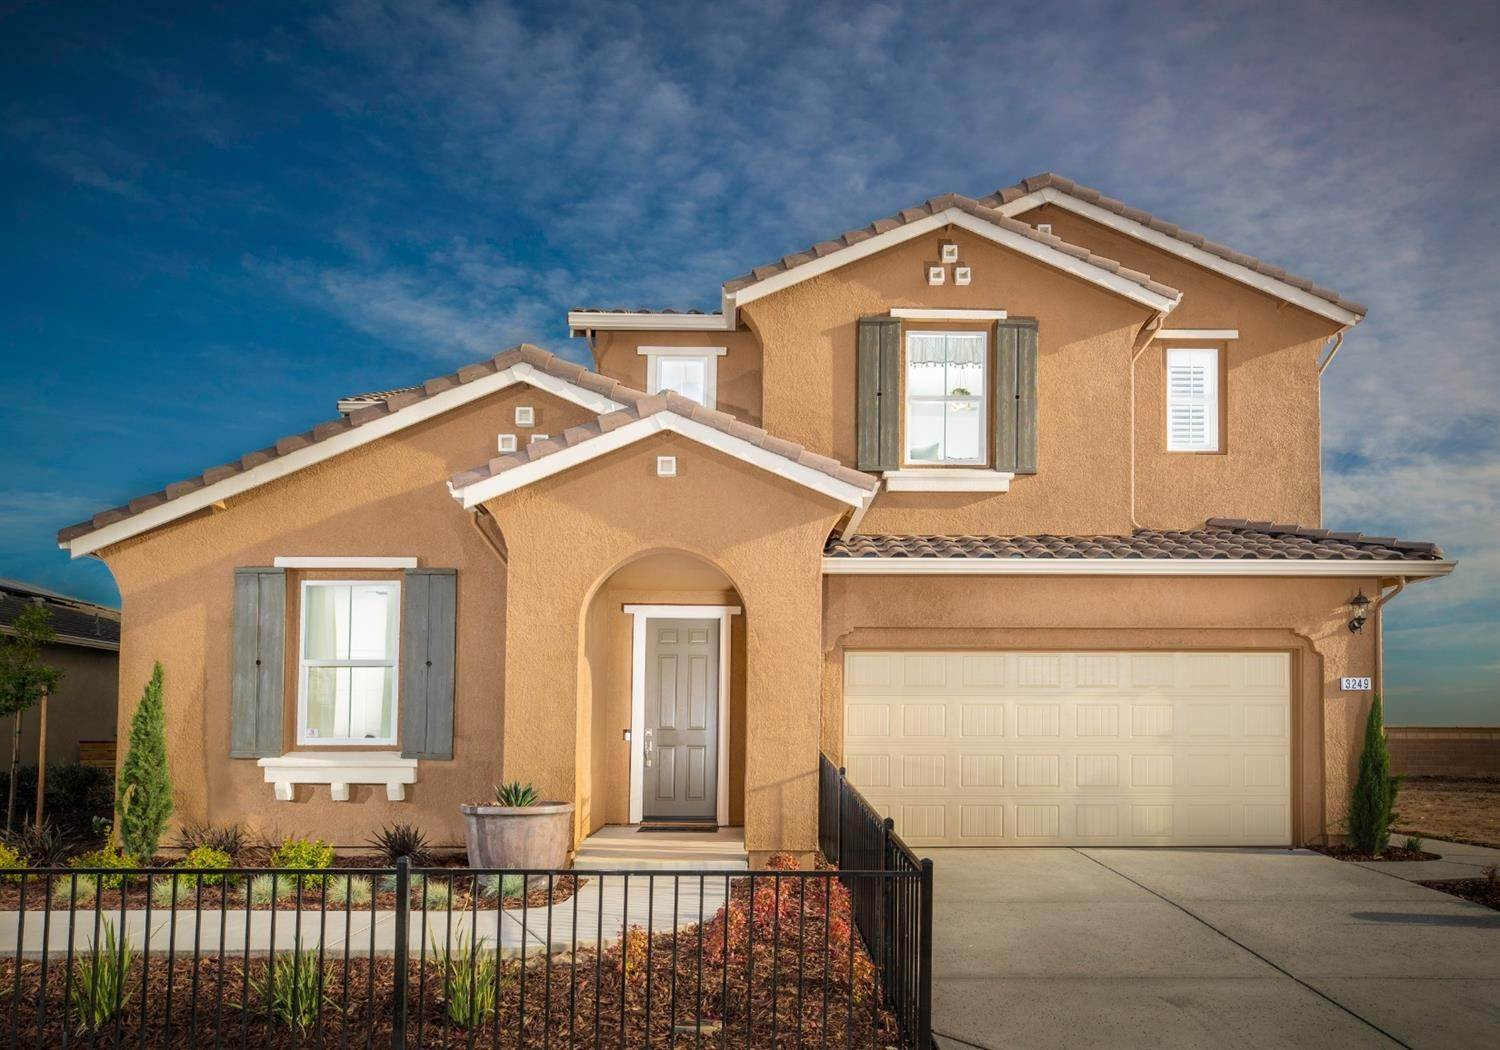 Single Family Homes for Active at 3249 Adelaide Loop Roseville, California 95747 United States